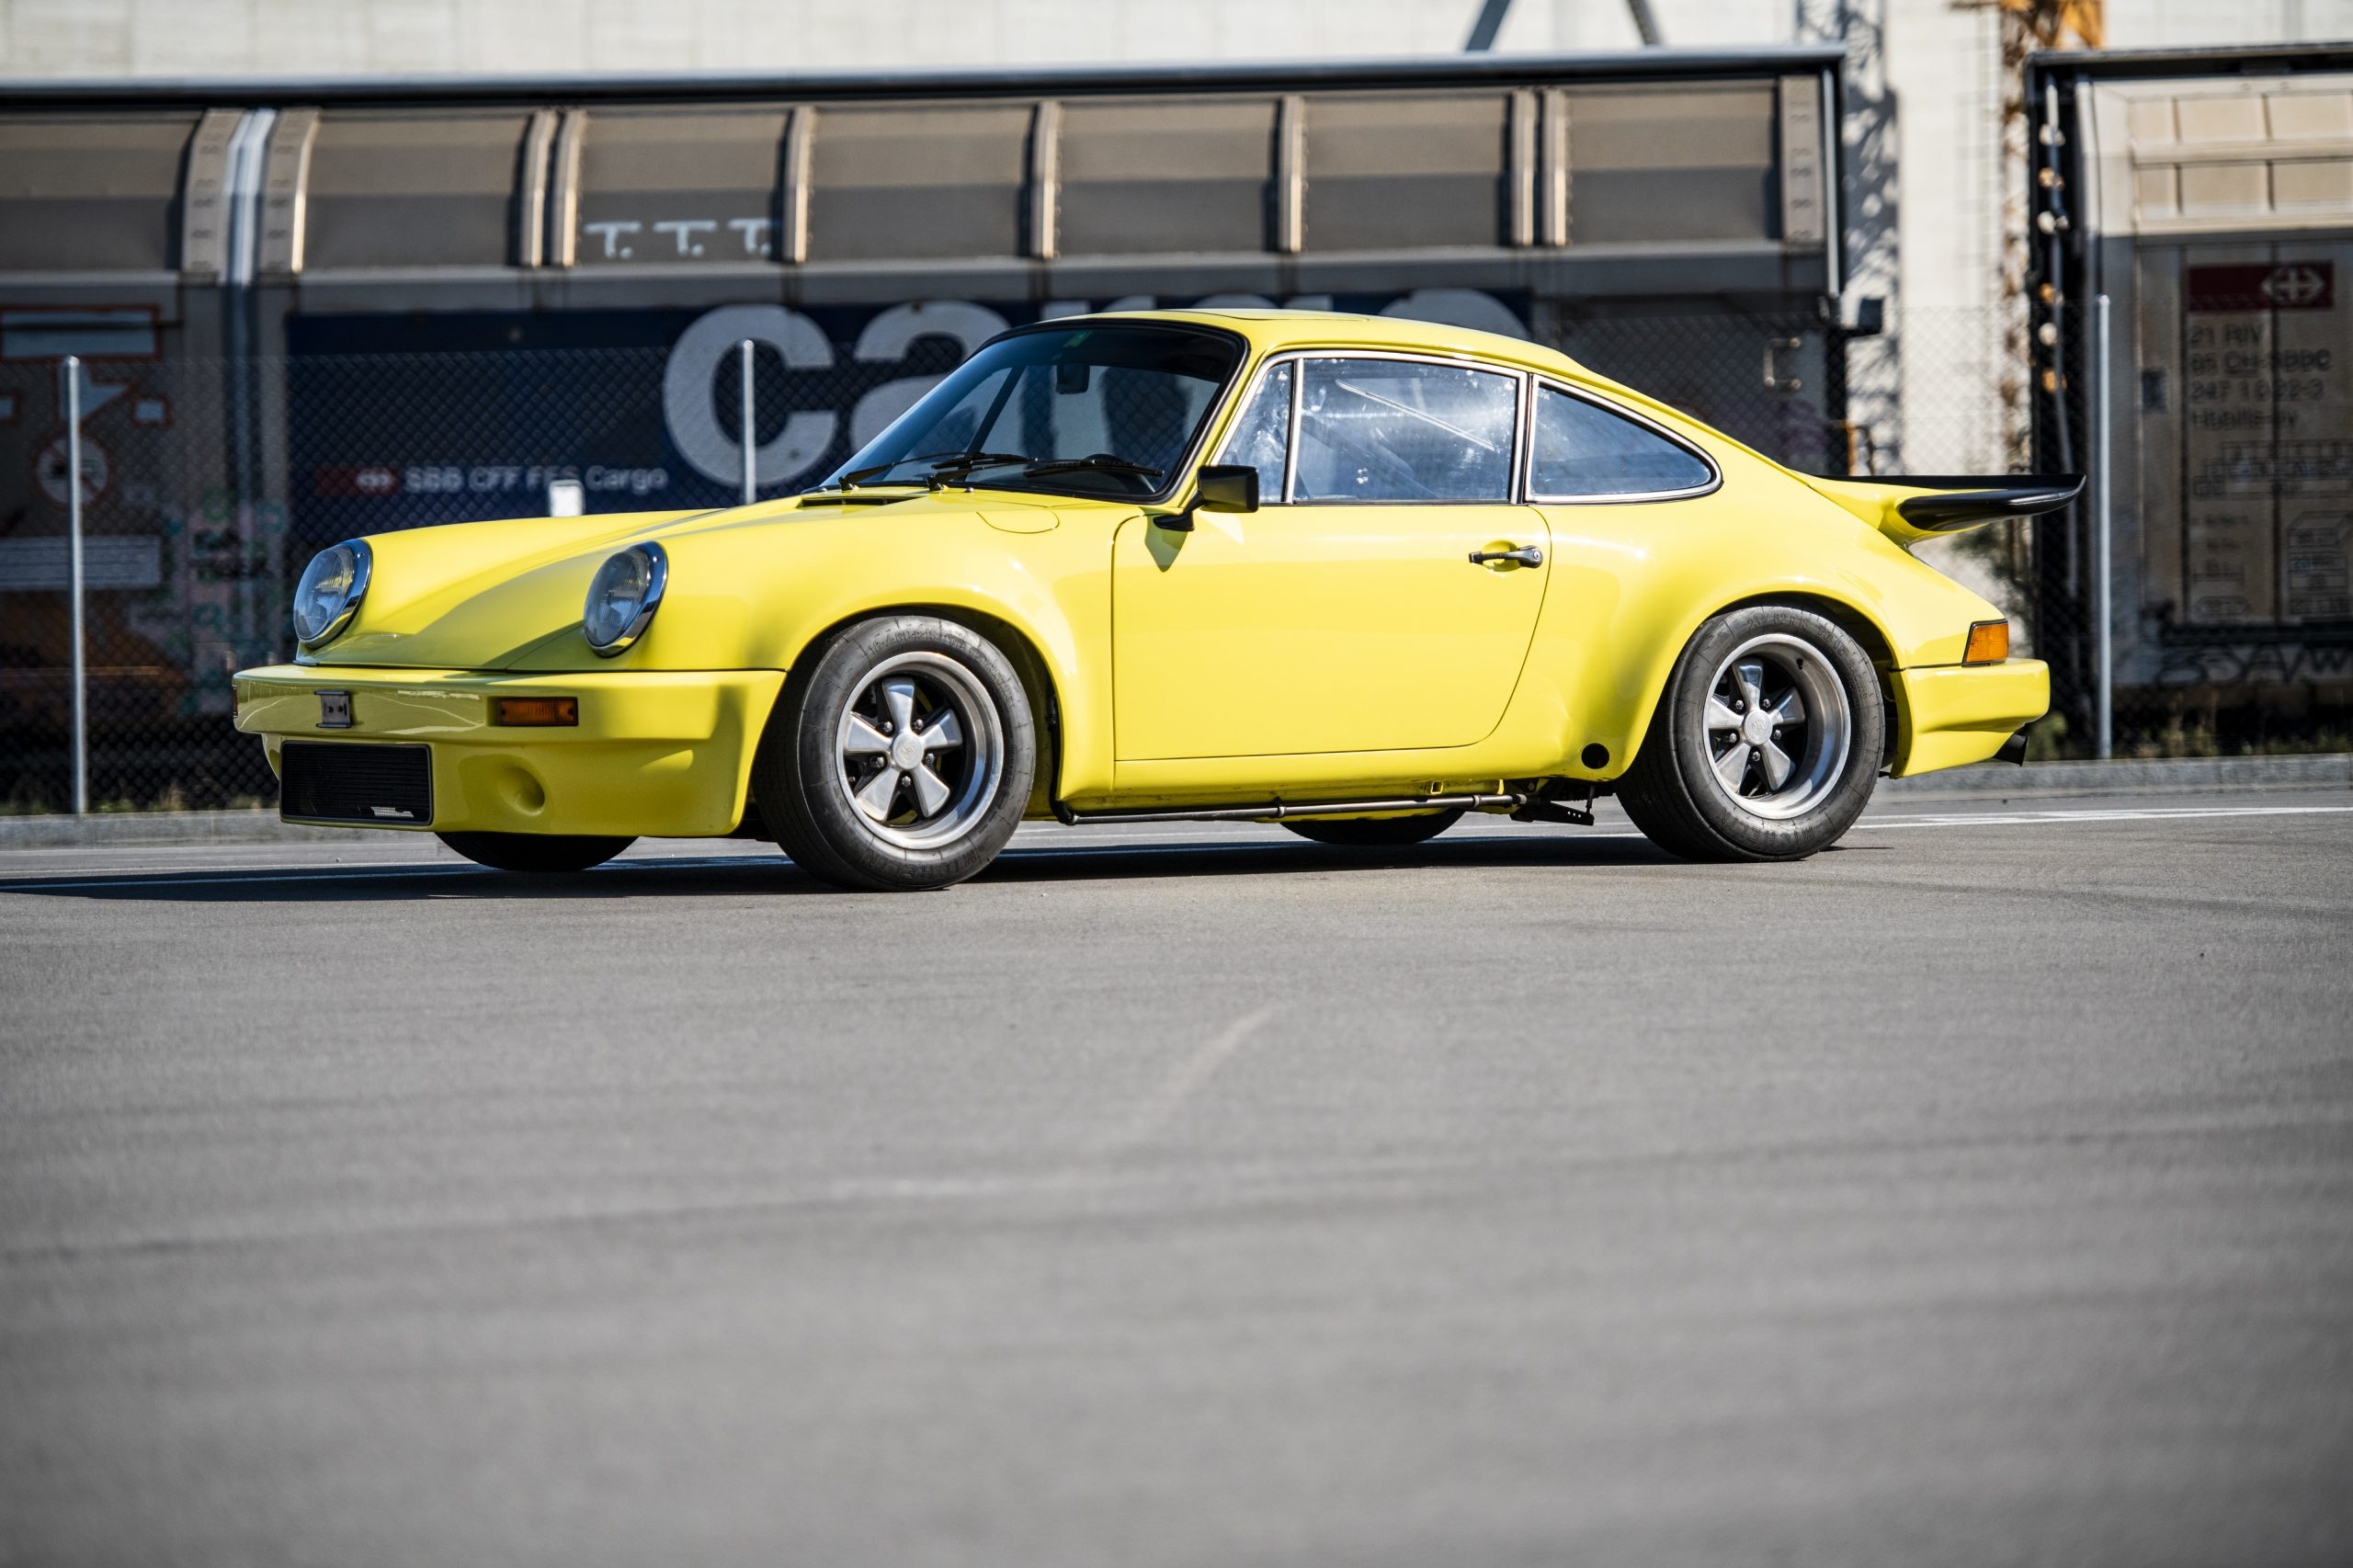 1974 Porsche 911 Carrera RS 3.0 (Credit – Remi Dargegen ©2020 Courtesy of RM Sotheby's)